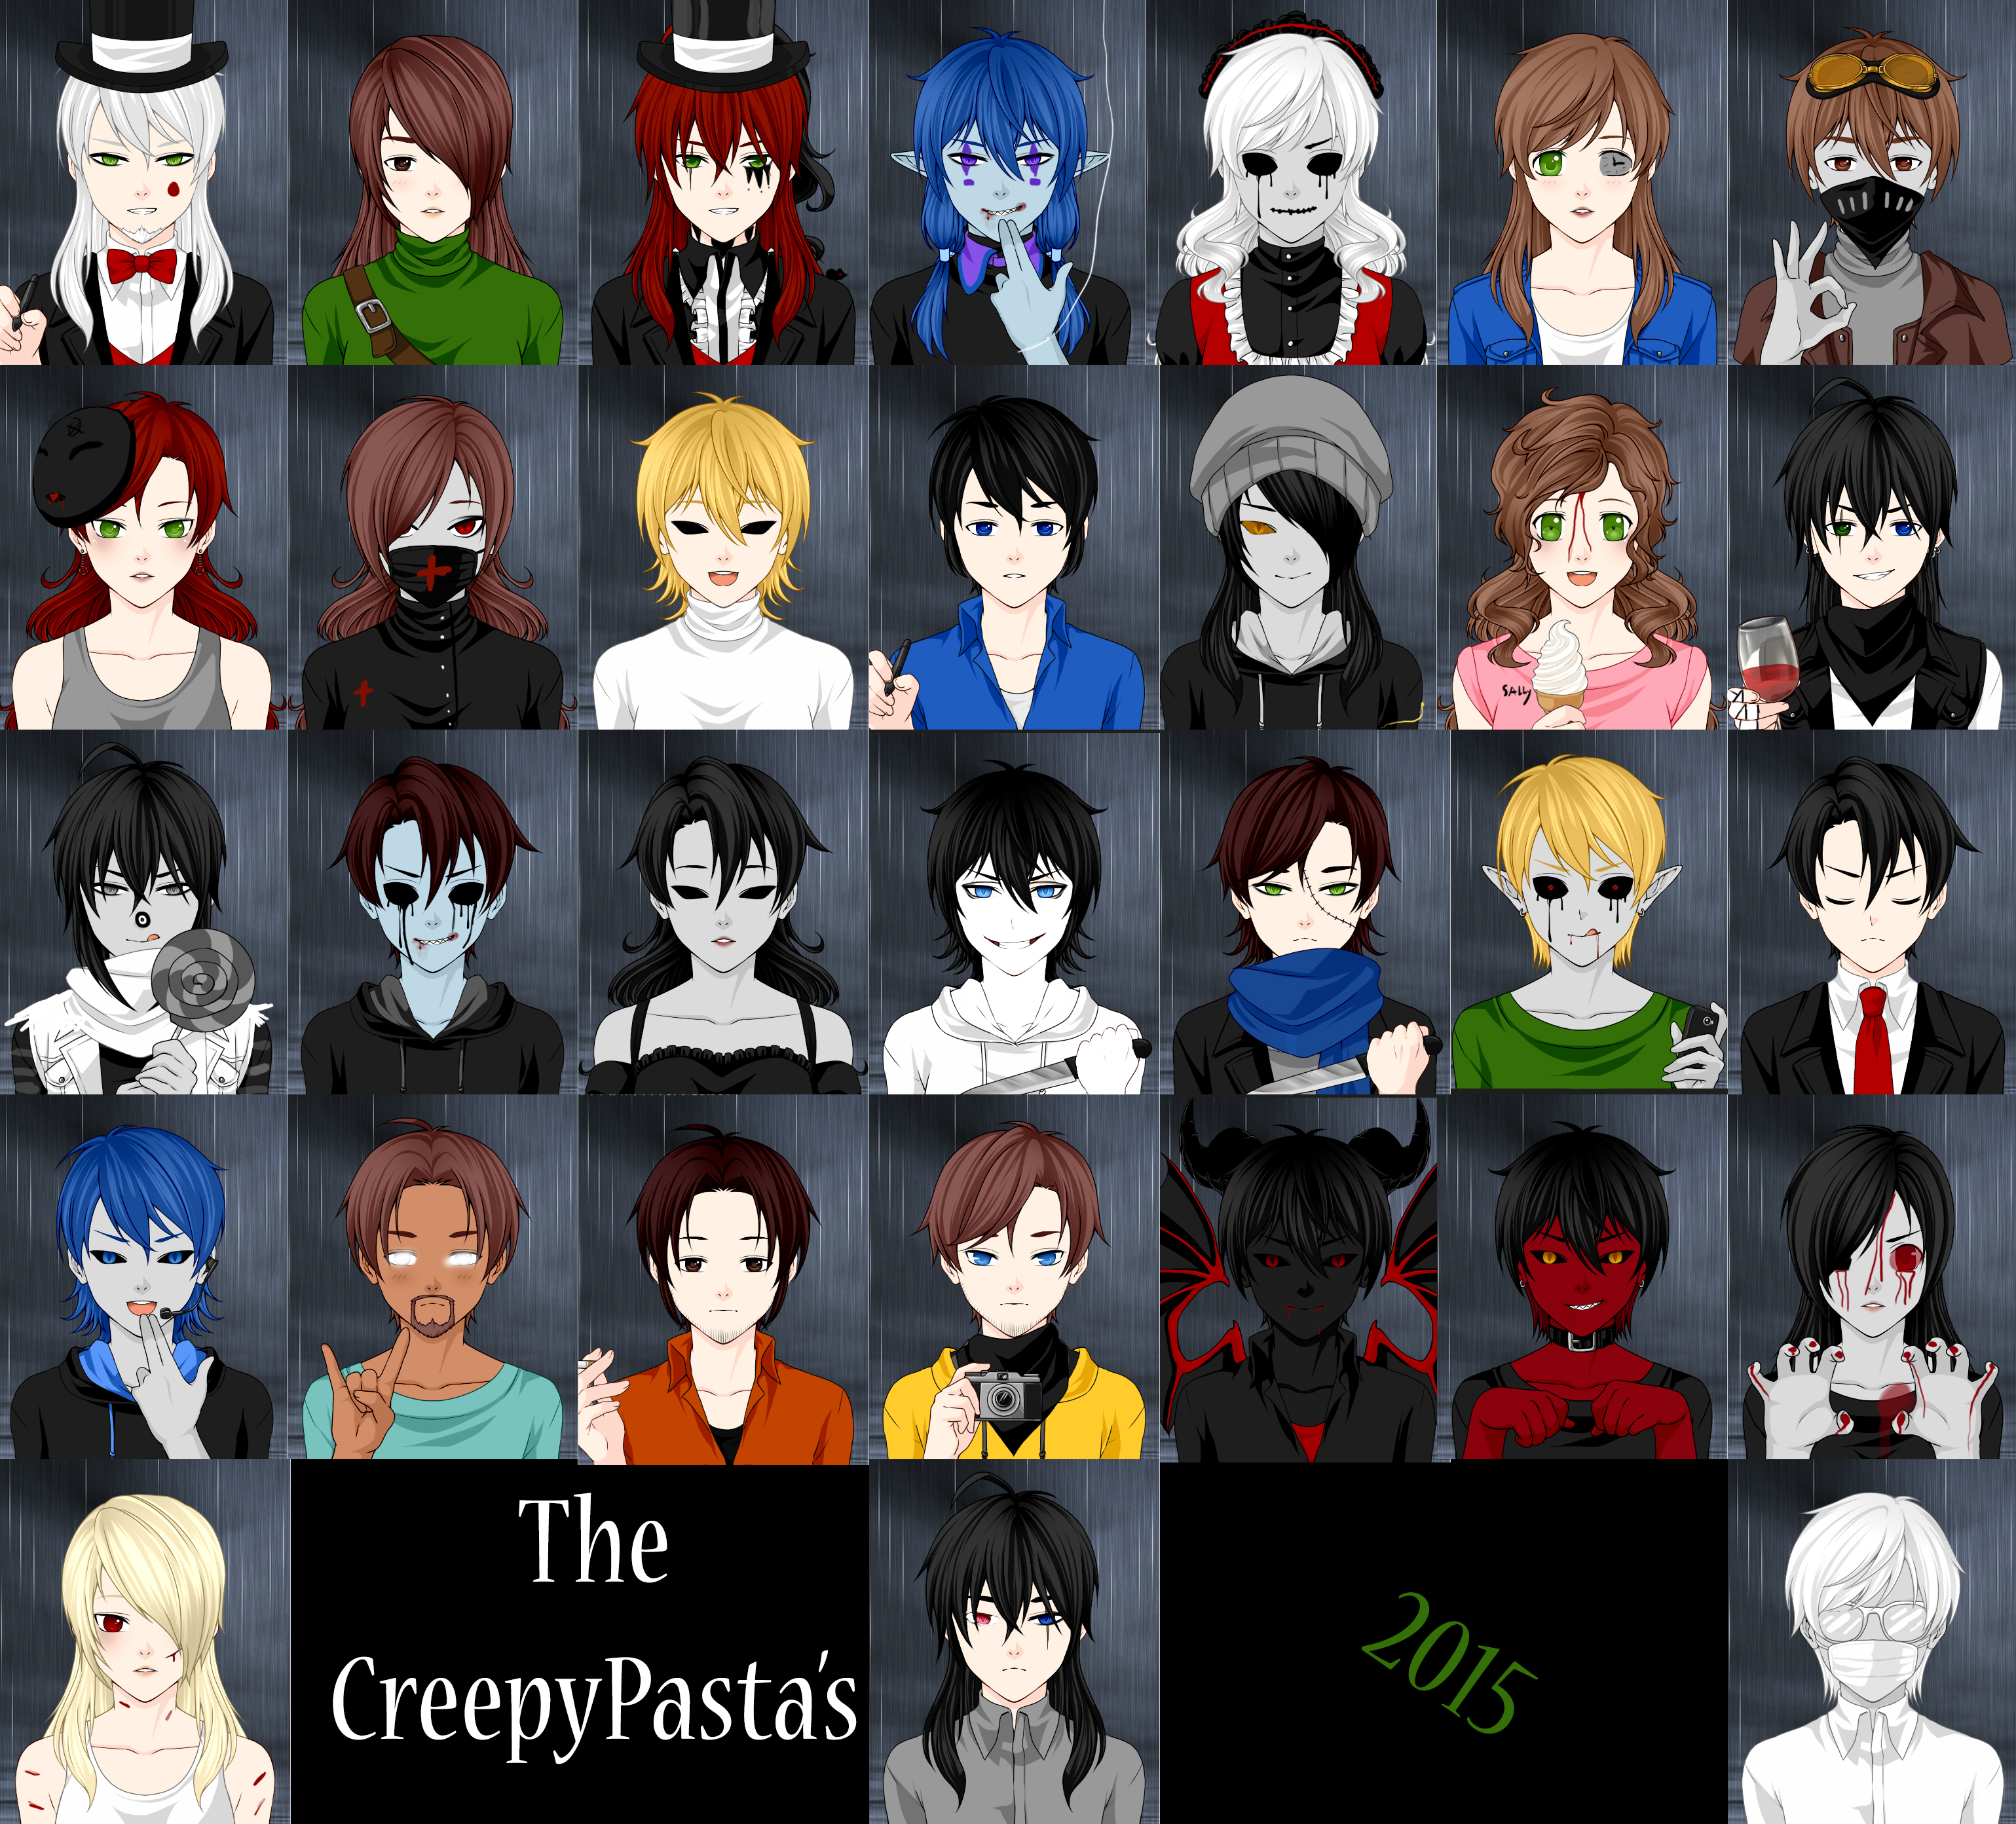 Images of Female Creepypasta Characters - www industrious info